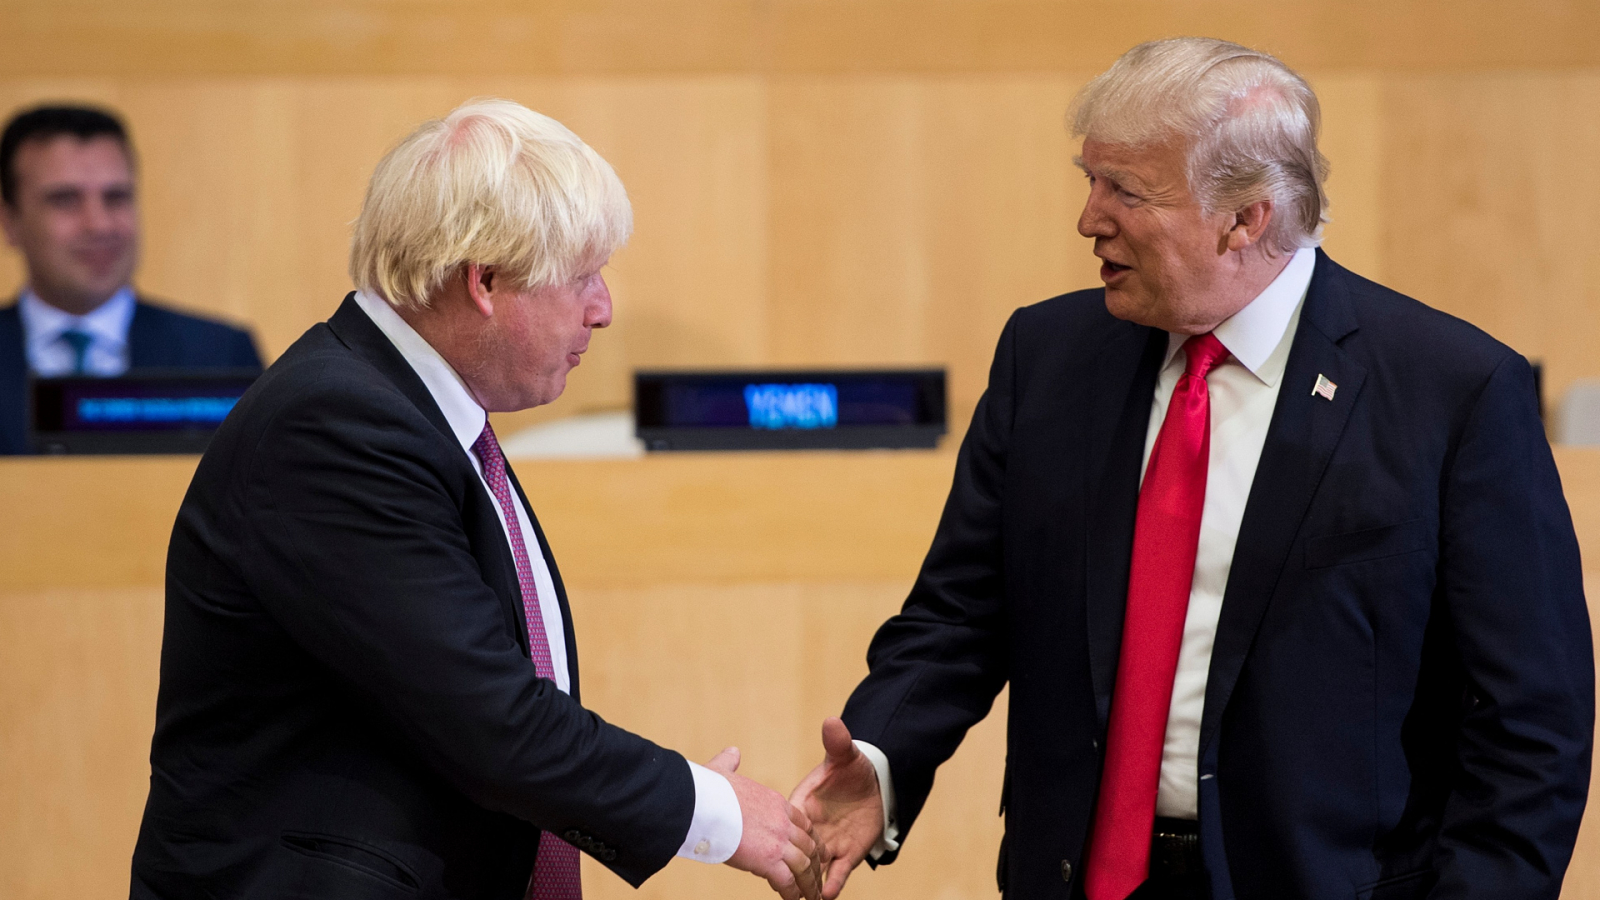 u-k-foreign-secretary-boris-johnson-thinks-trump-would-do-a-good-job-of-brexit